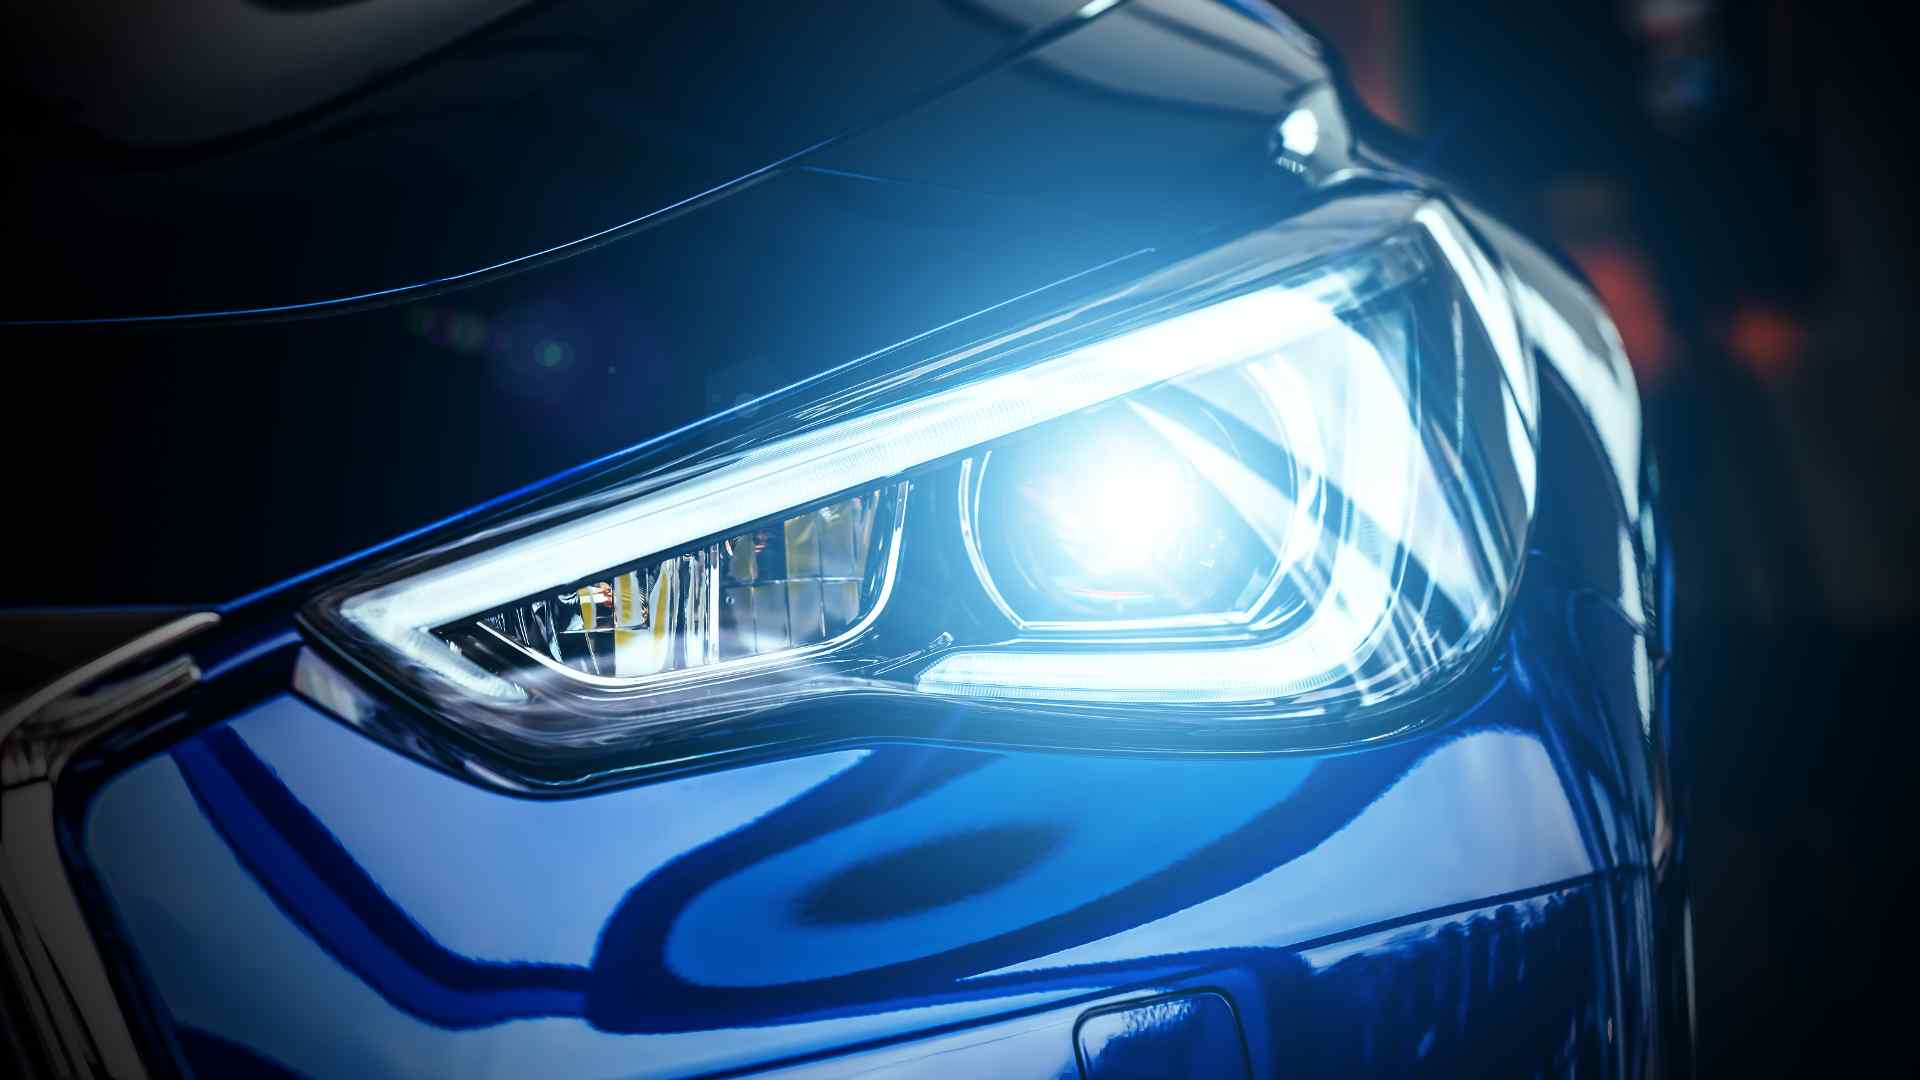 Changing a car's headlight bulb can cost more than £800